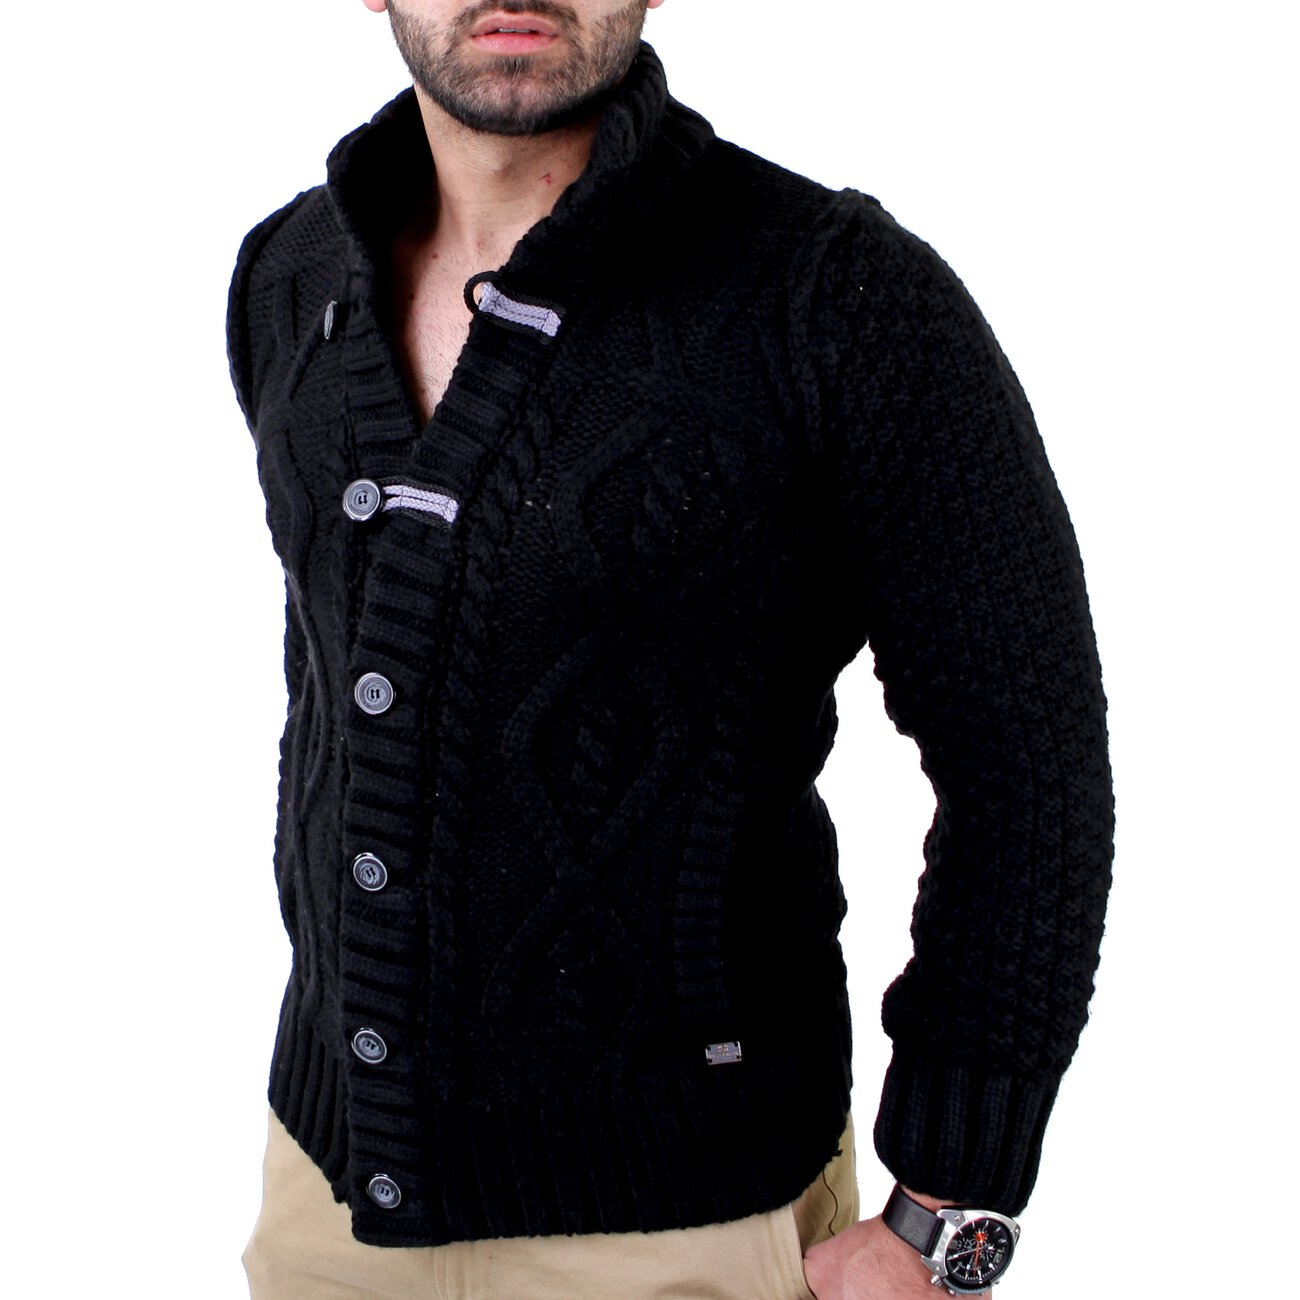 strickjacke herren reslad winter jacke 3208 g nstig kaufen. Black Bedroom Furniture Sets. Home Design Ideas